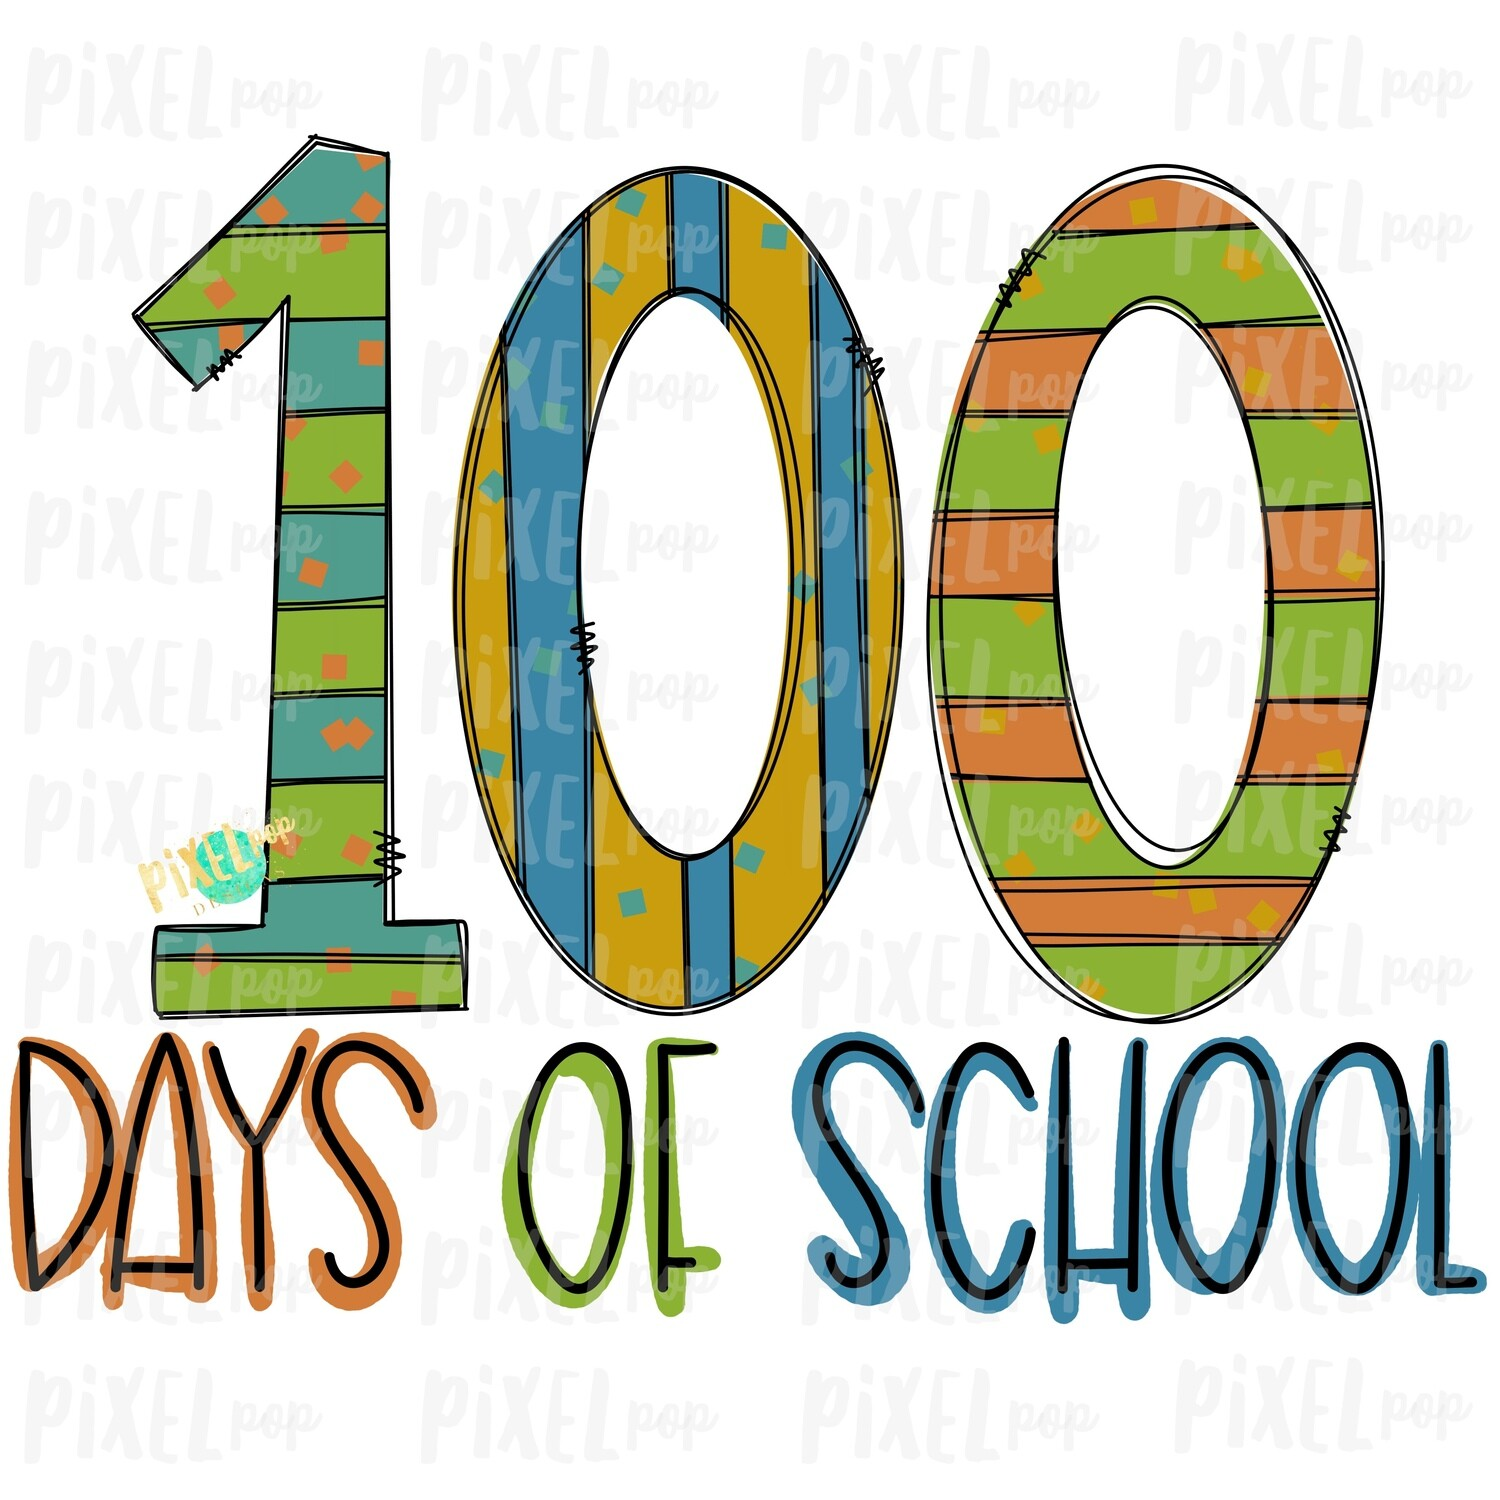 100 Days of School Design Blue Sublimation Art | School PNG| Hand Drawn PNG | Sublimation PNG | Digital Download | Printable Artwork | Art